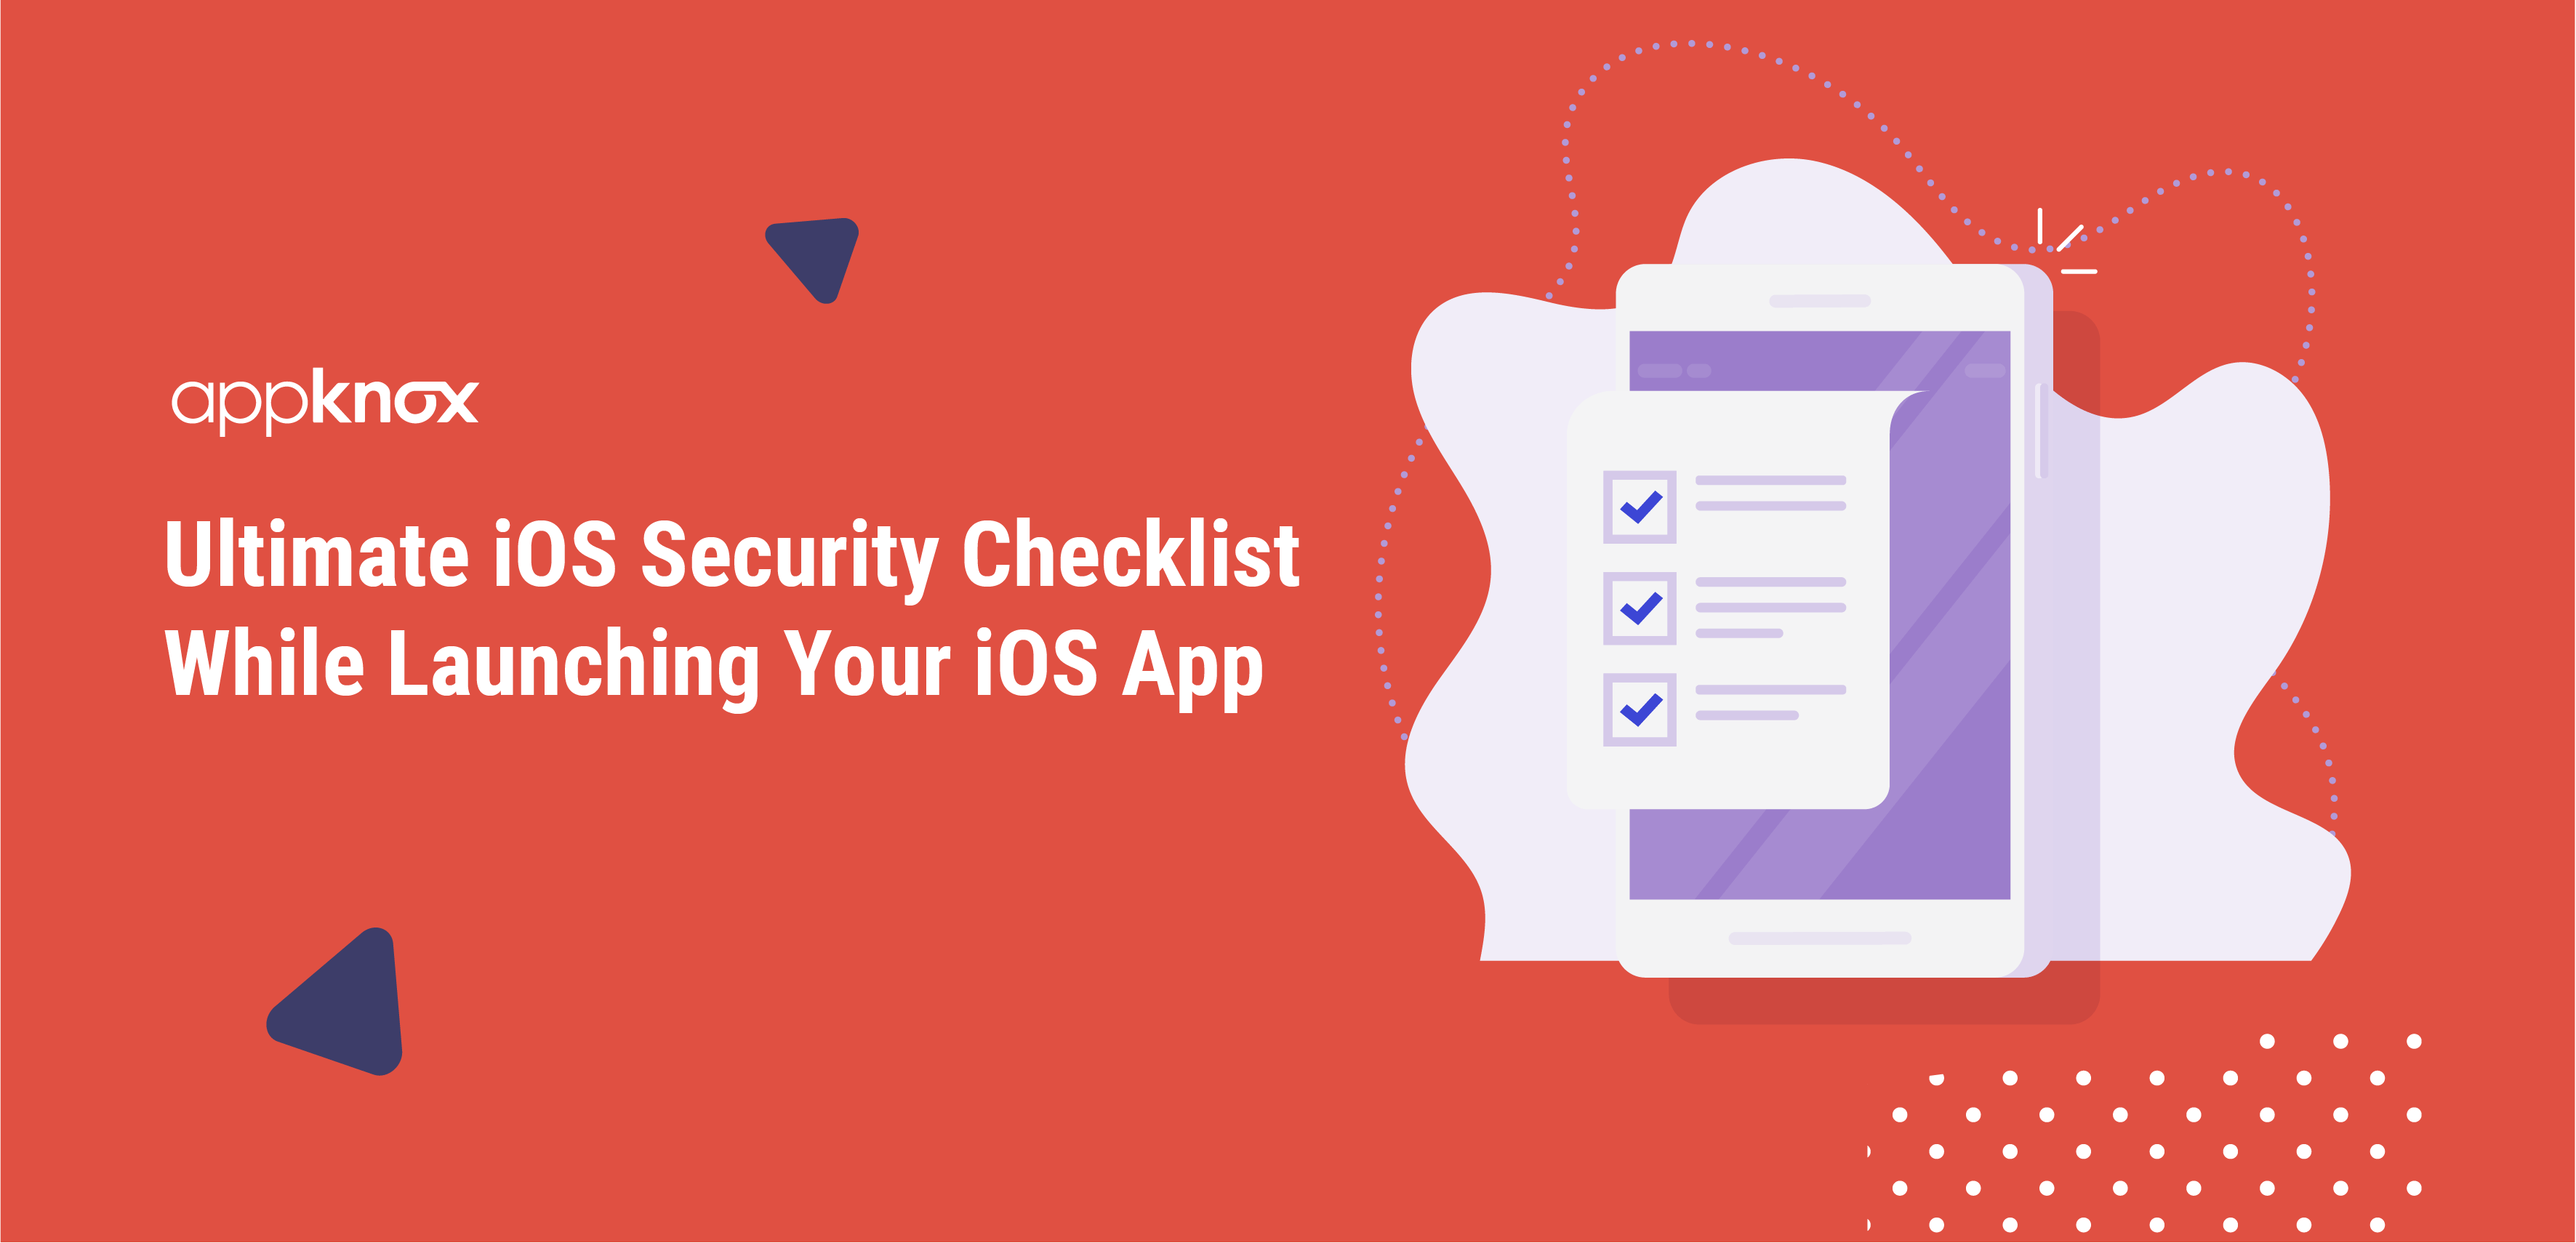 iOS Security Checklist While Launching Your iOS App